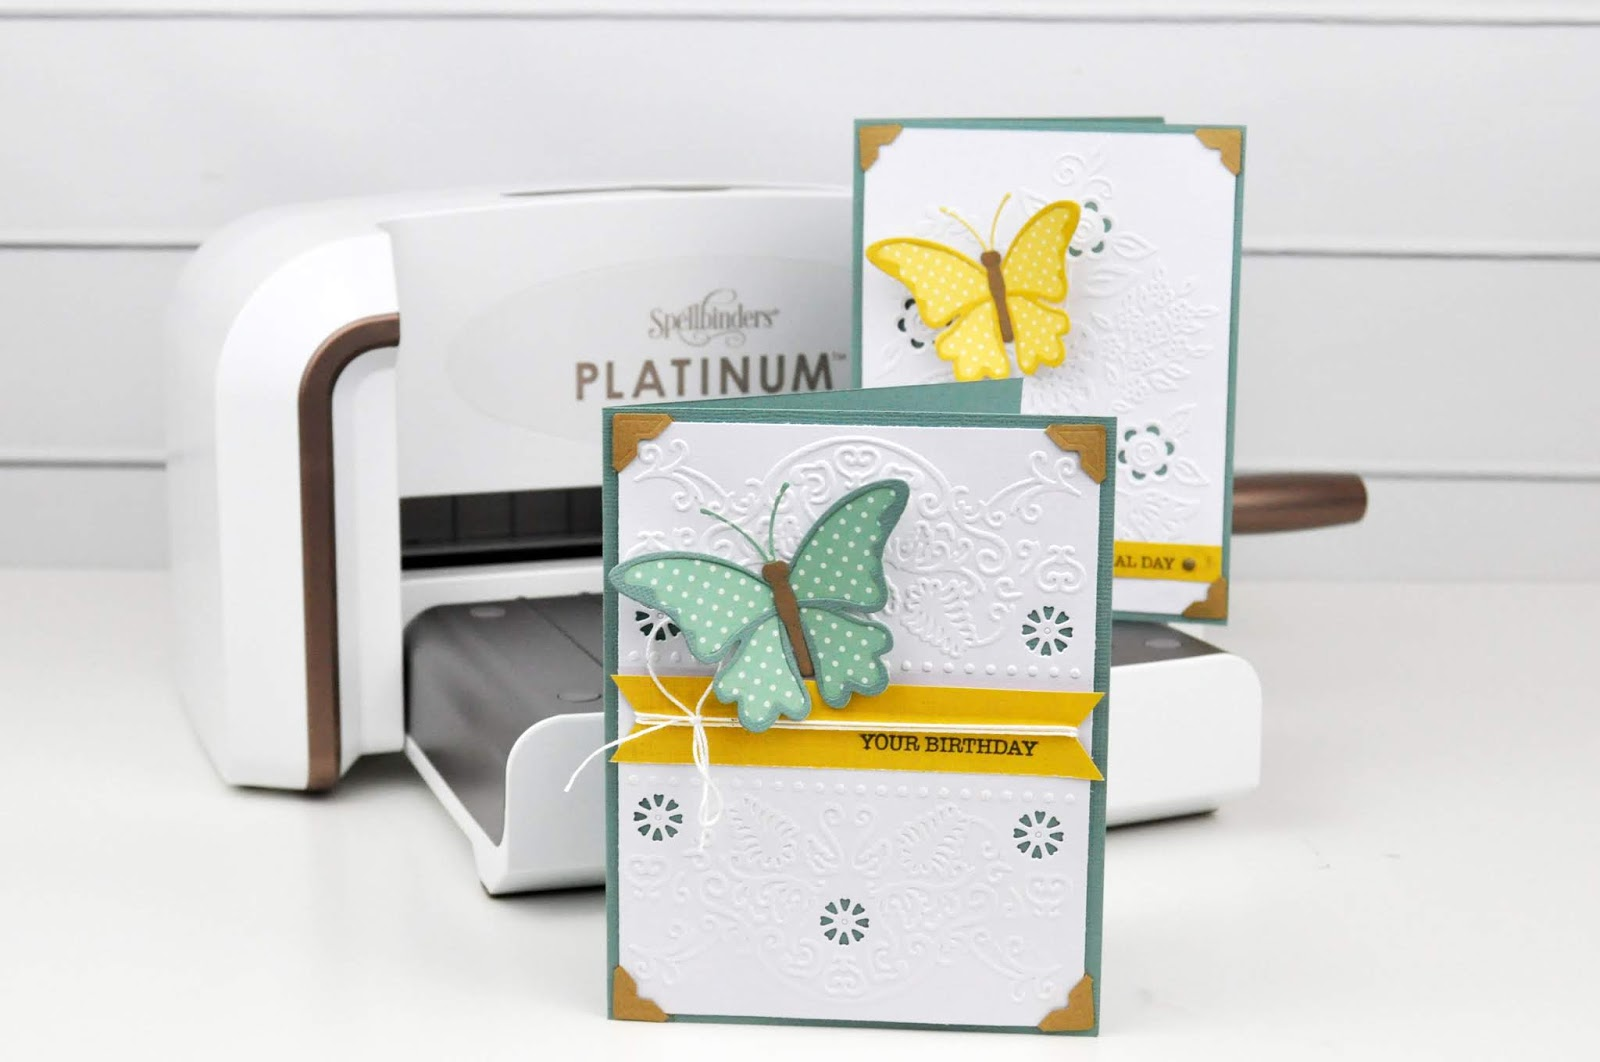 Spellbinders Emboss and Die Cut Folders tutorial by Jen Gallacher featuring the Spellbinders Platinum machine and dies and stamps from Spellbinders. #embossingfolder #diecutting #spellbinders #jengallacher